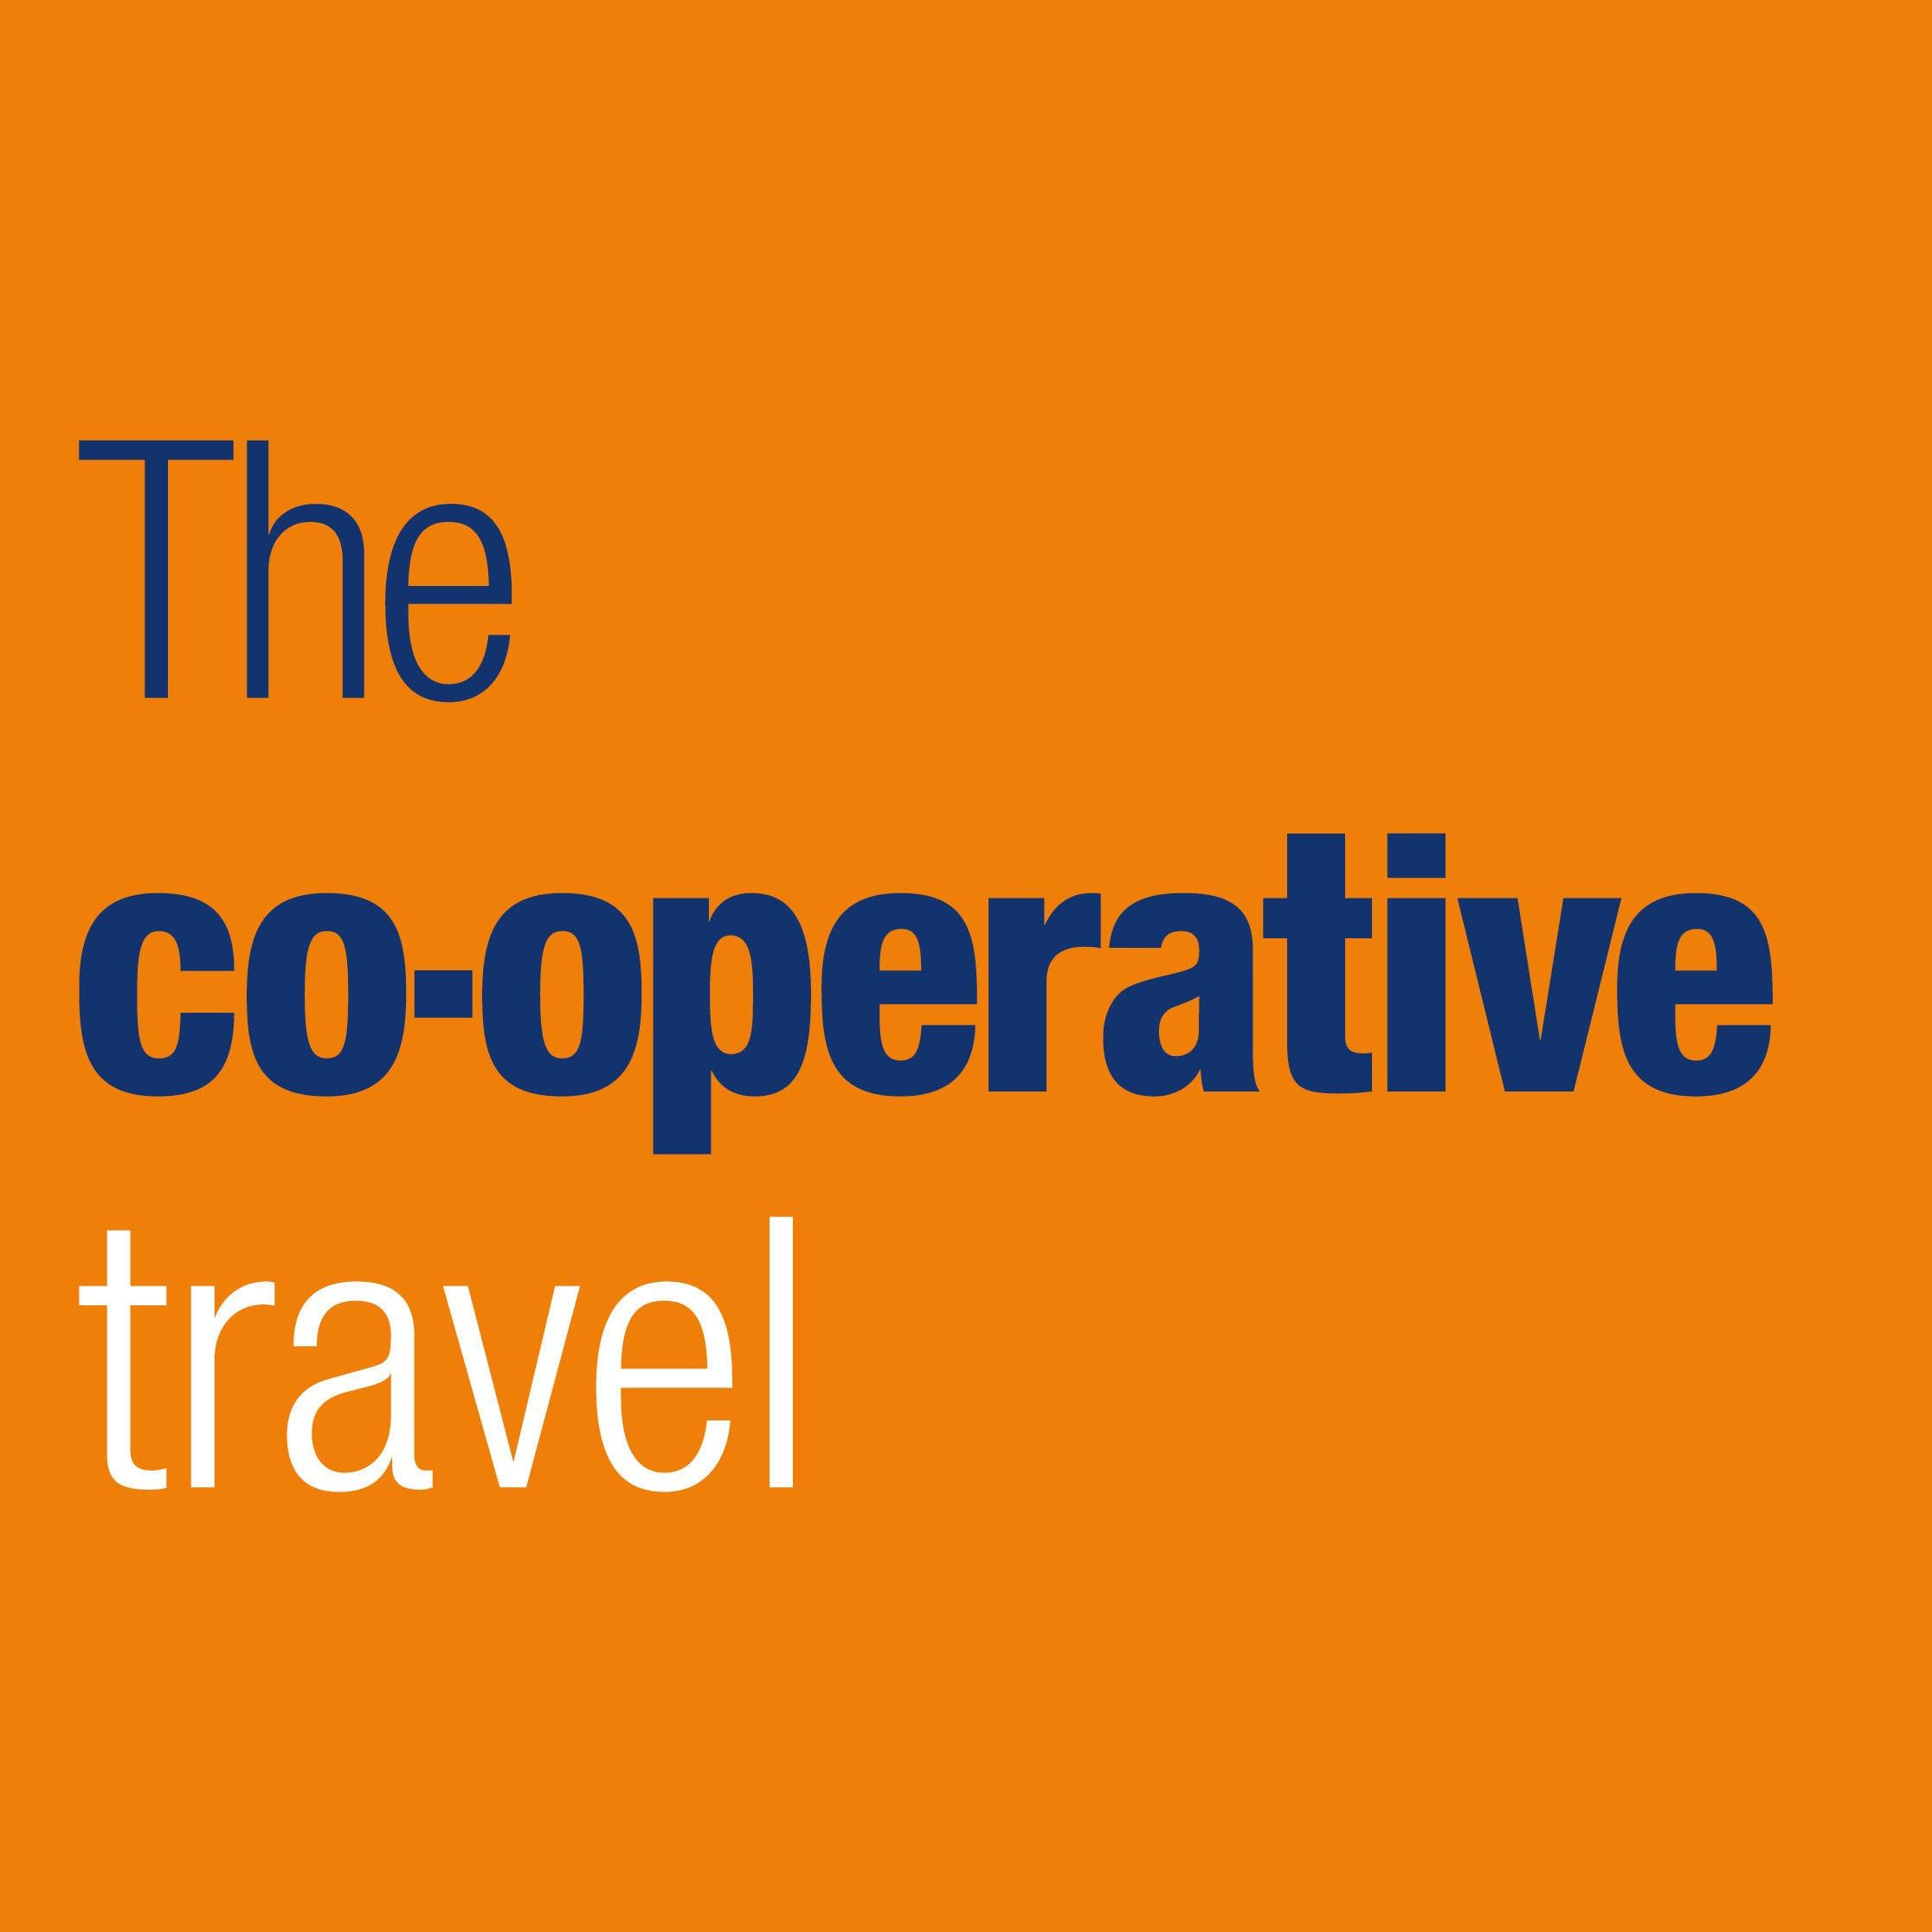 The Co-operative Travel - London Road North, Lowestoft Logo